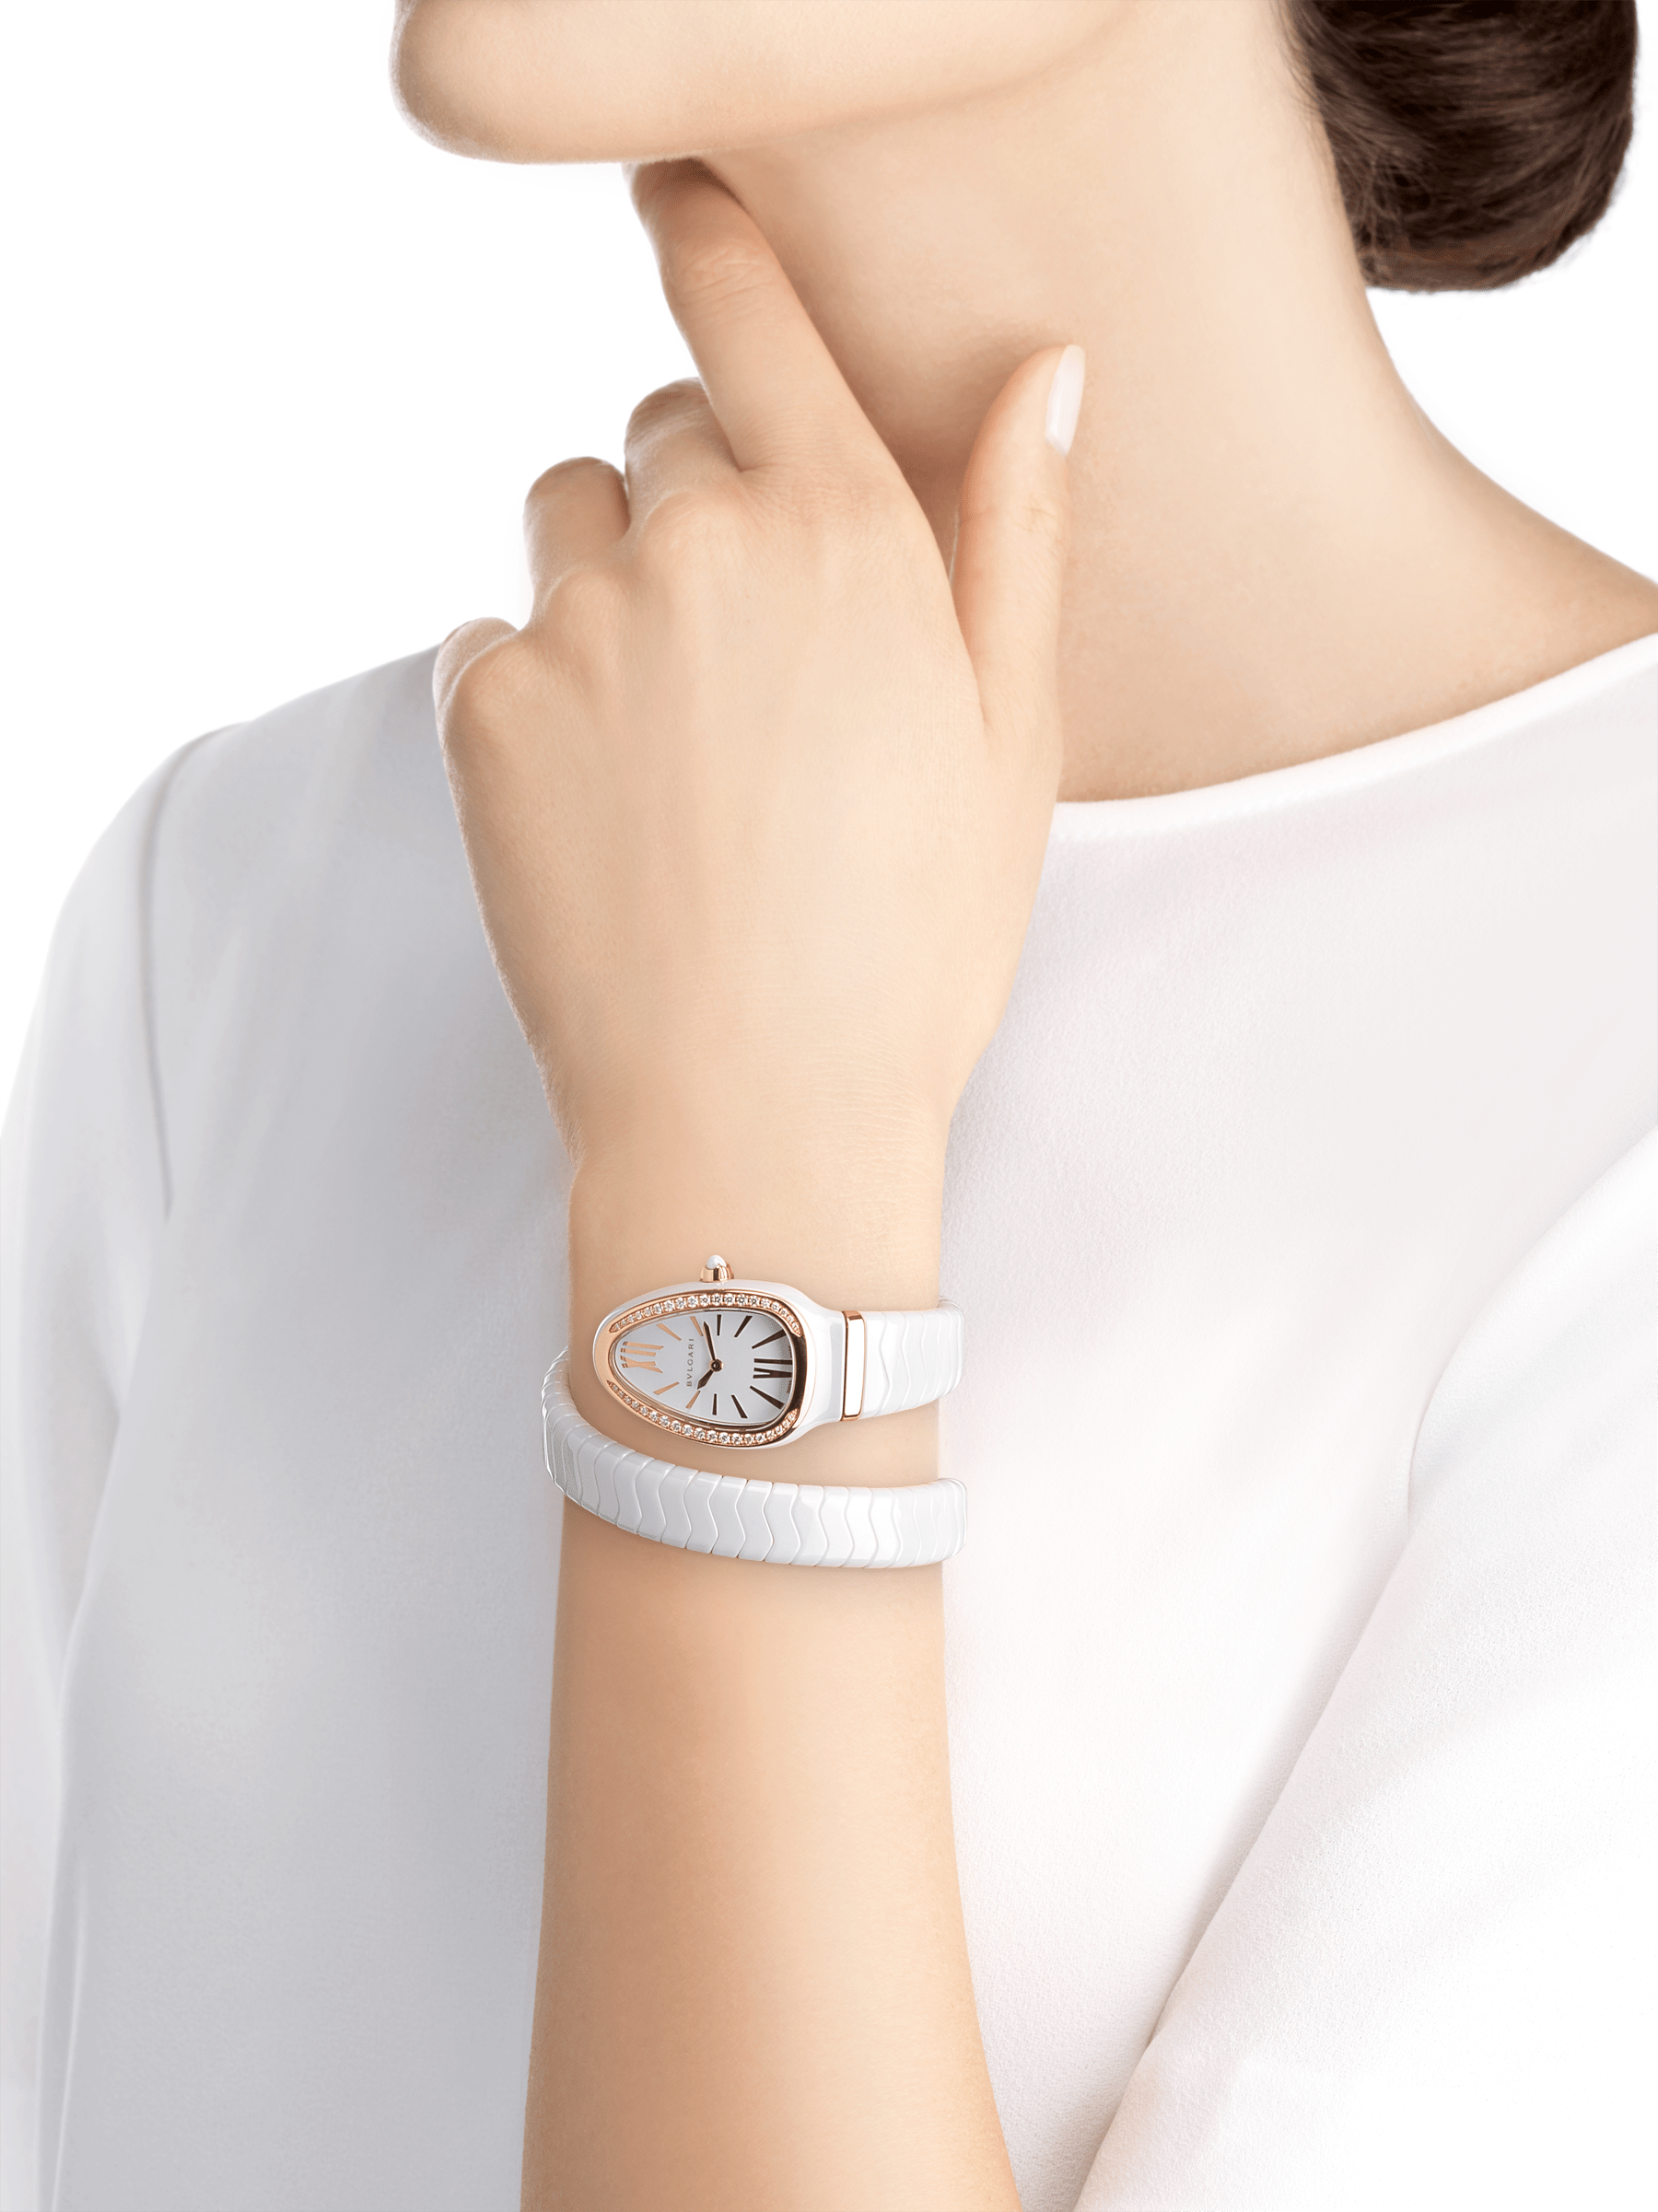 Serpenti Spiga single spiral watch with white ceramic case, 18 kt rose gold bezel set with brilliant cut diamonds, white lacquered dial, white ceramic bracelet with 18 kt rose gold elements. 102613 image 4